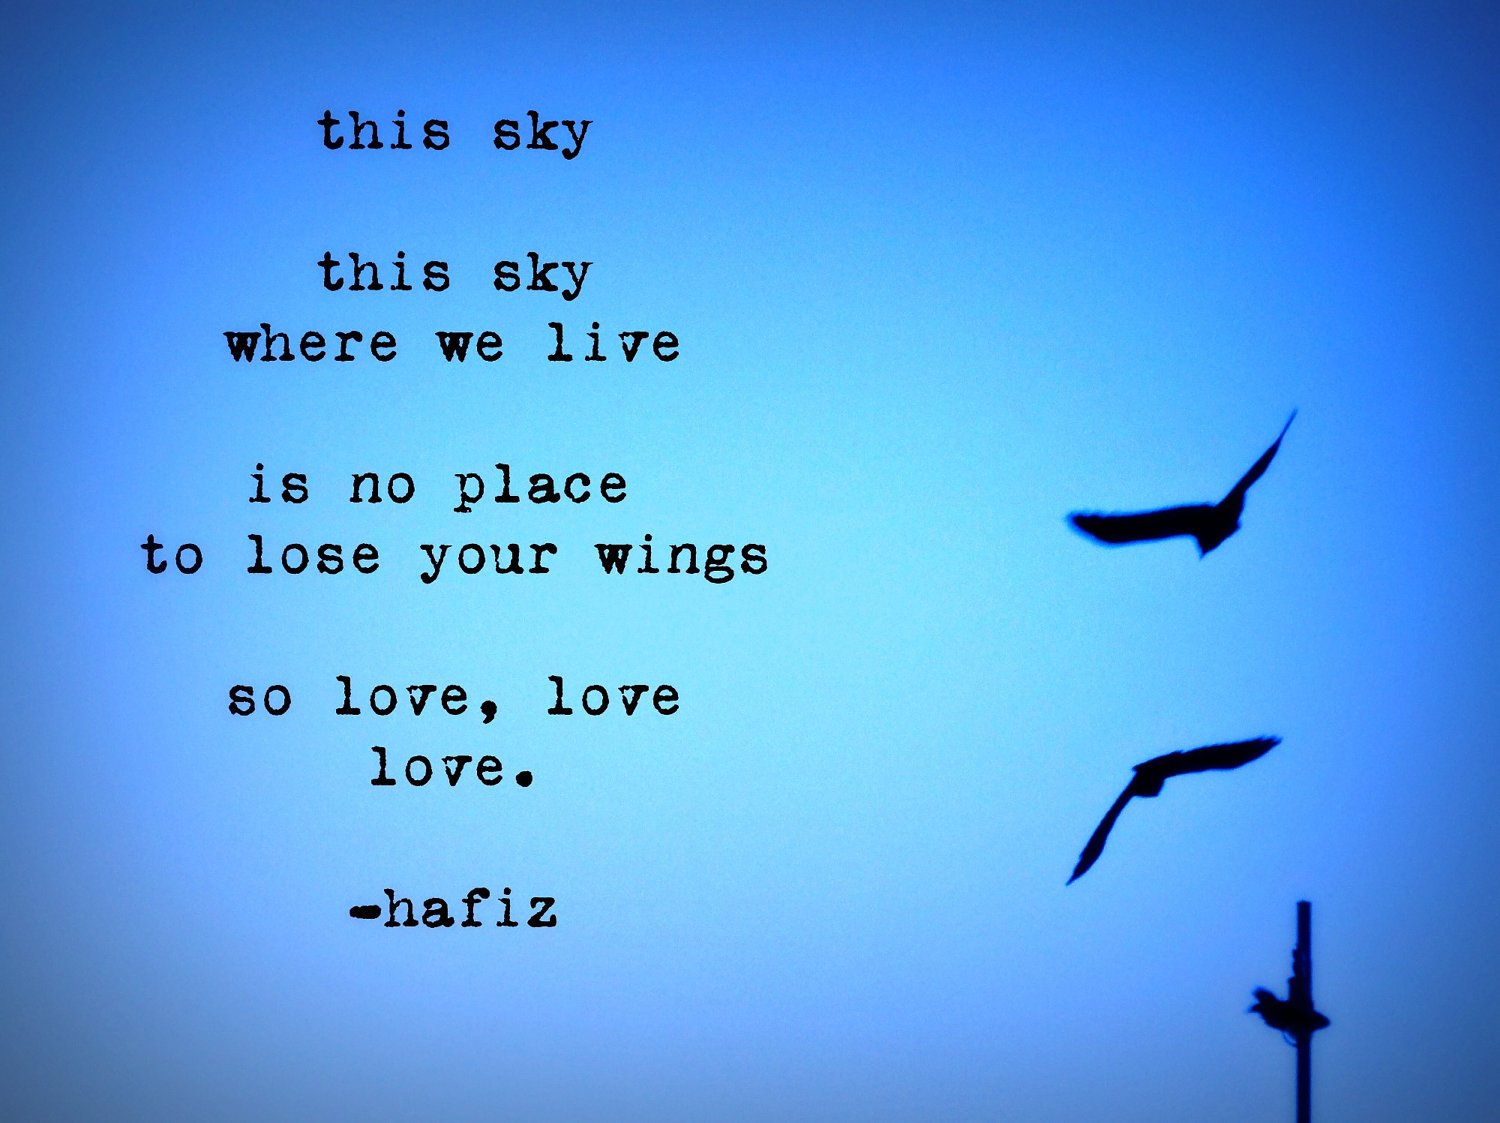 This Sky This Sky Where We Live Is No Place To Lose Your Wings By Hafiz